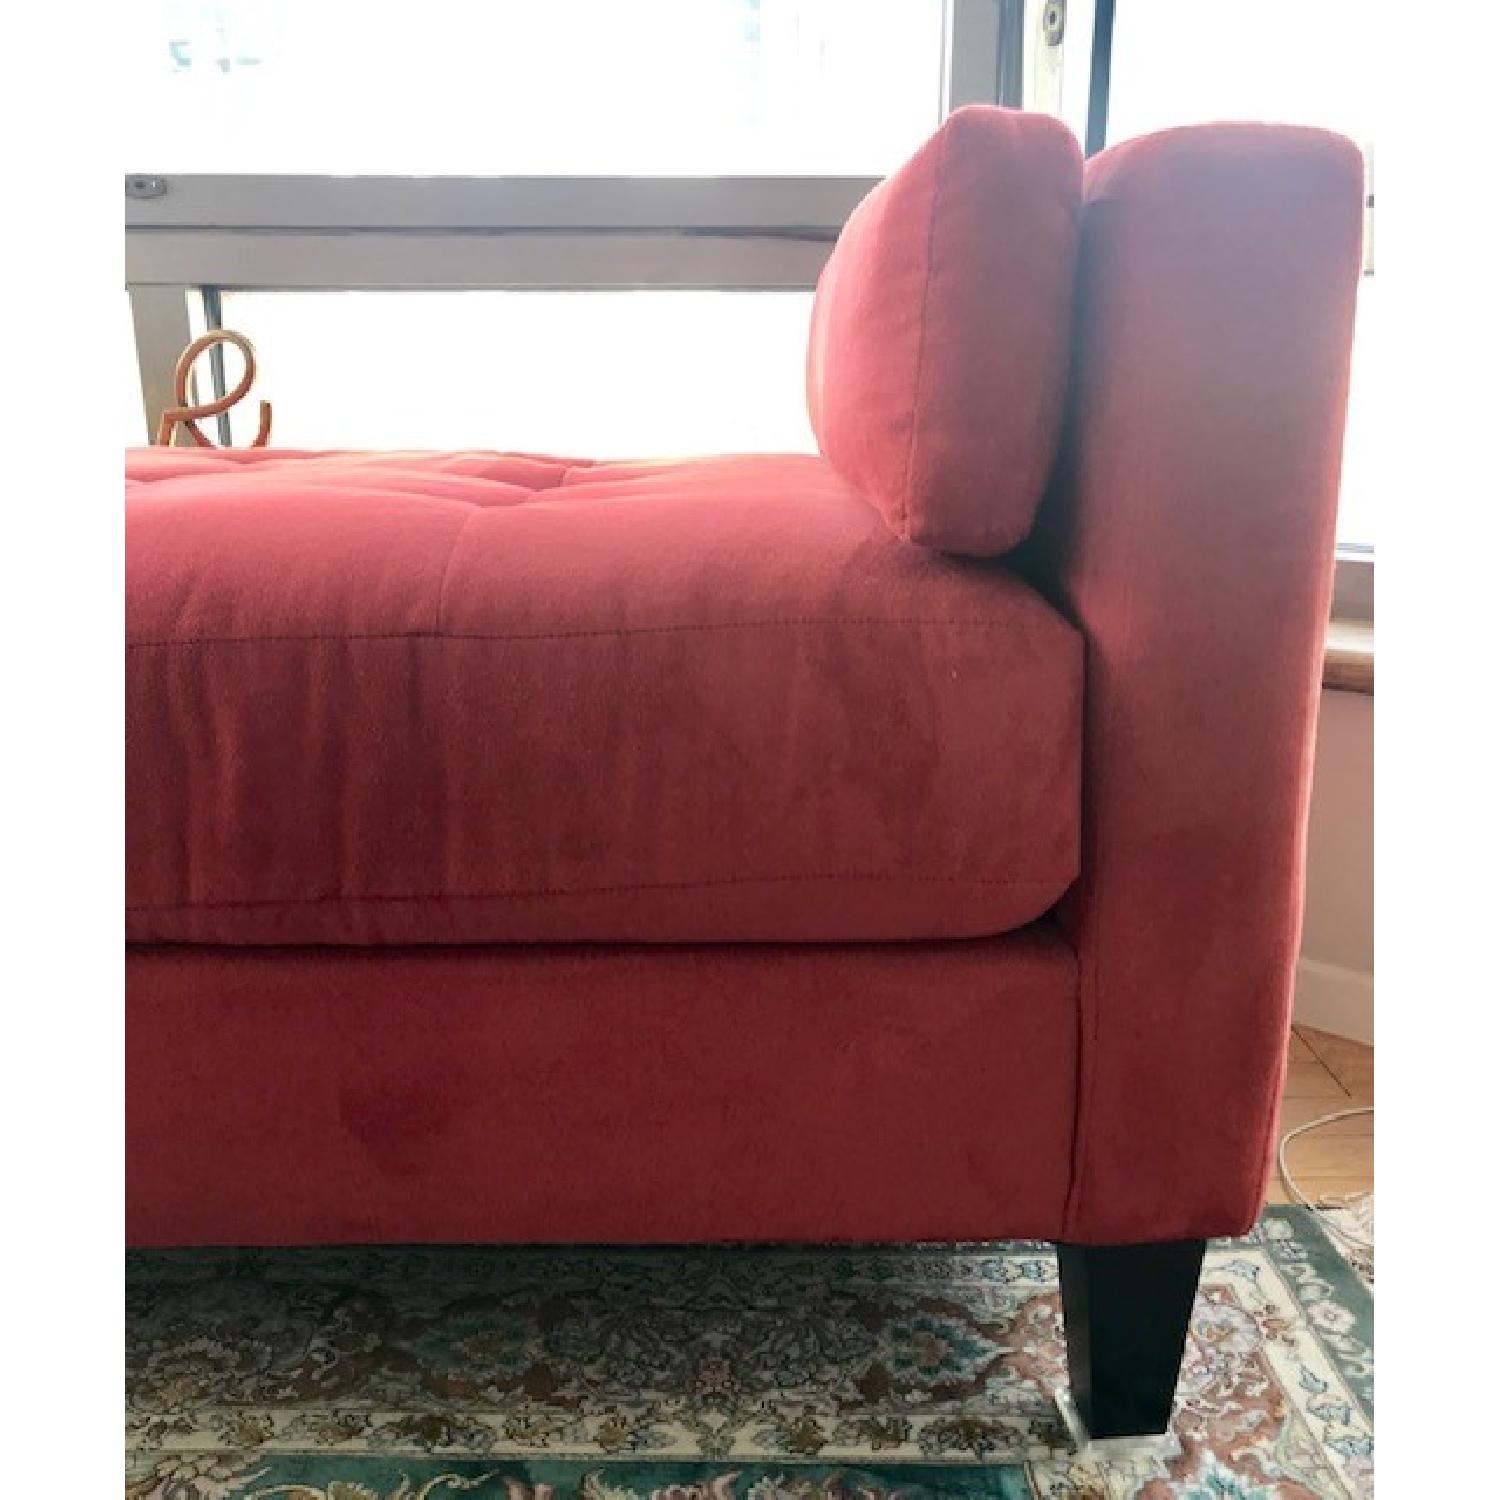 Macy's Max Home Amalfi Red Microfiber Chaise/Daybed - image-6